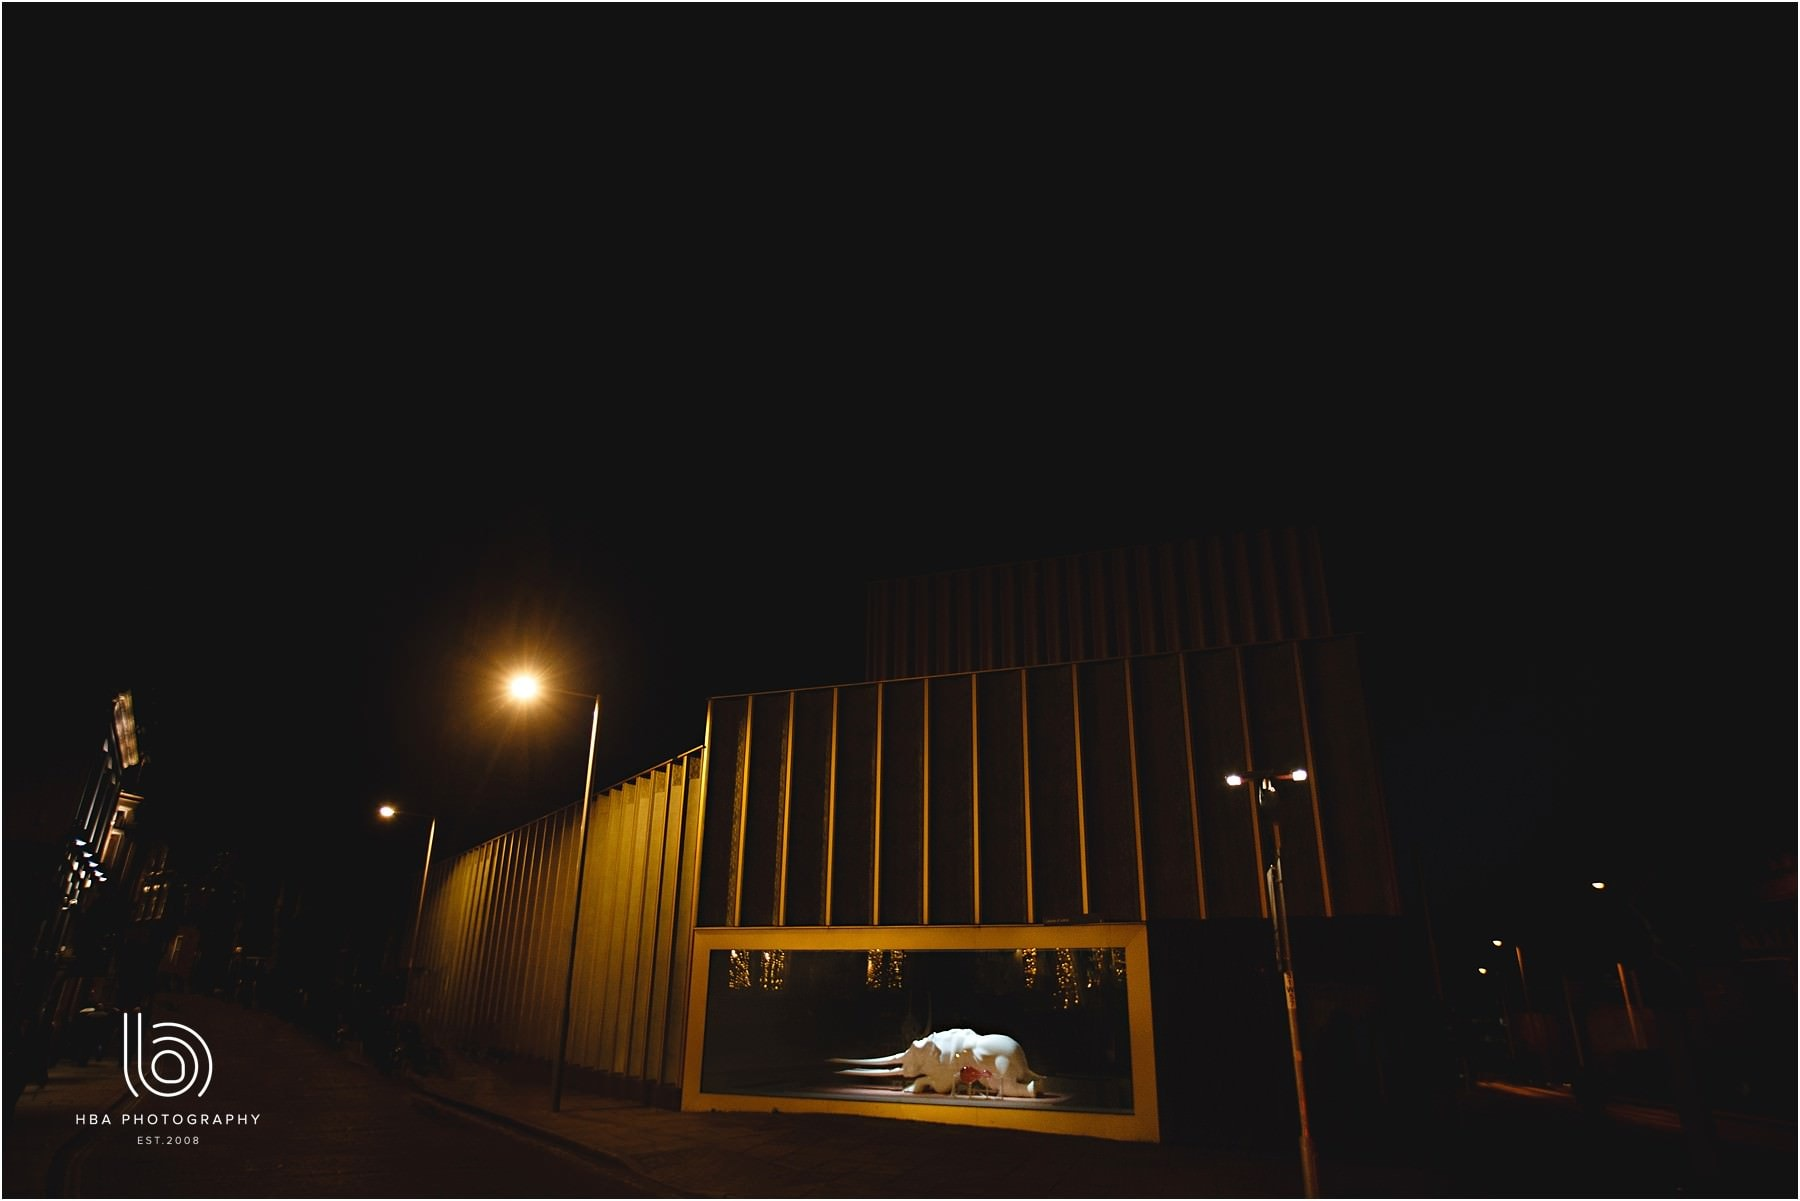 The Nottingham contemporary at night